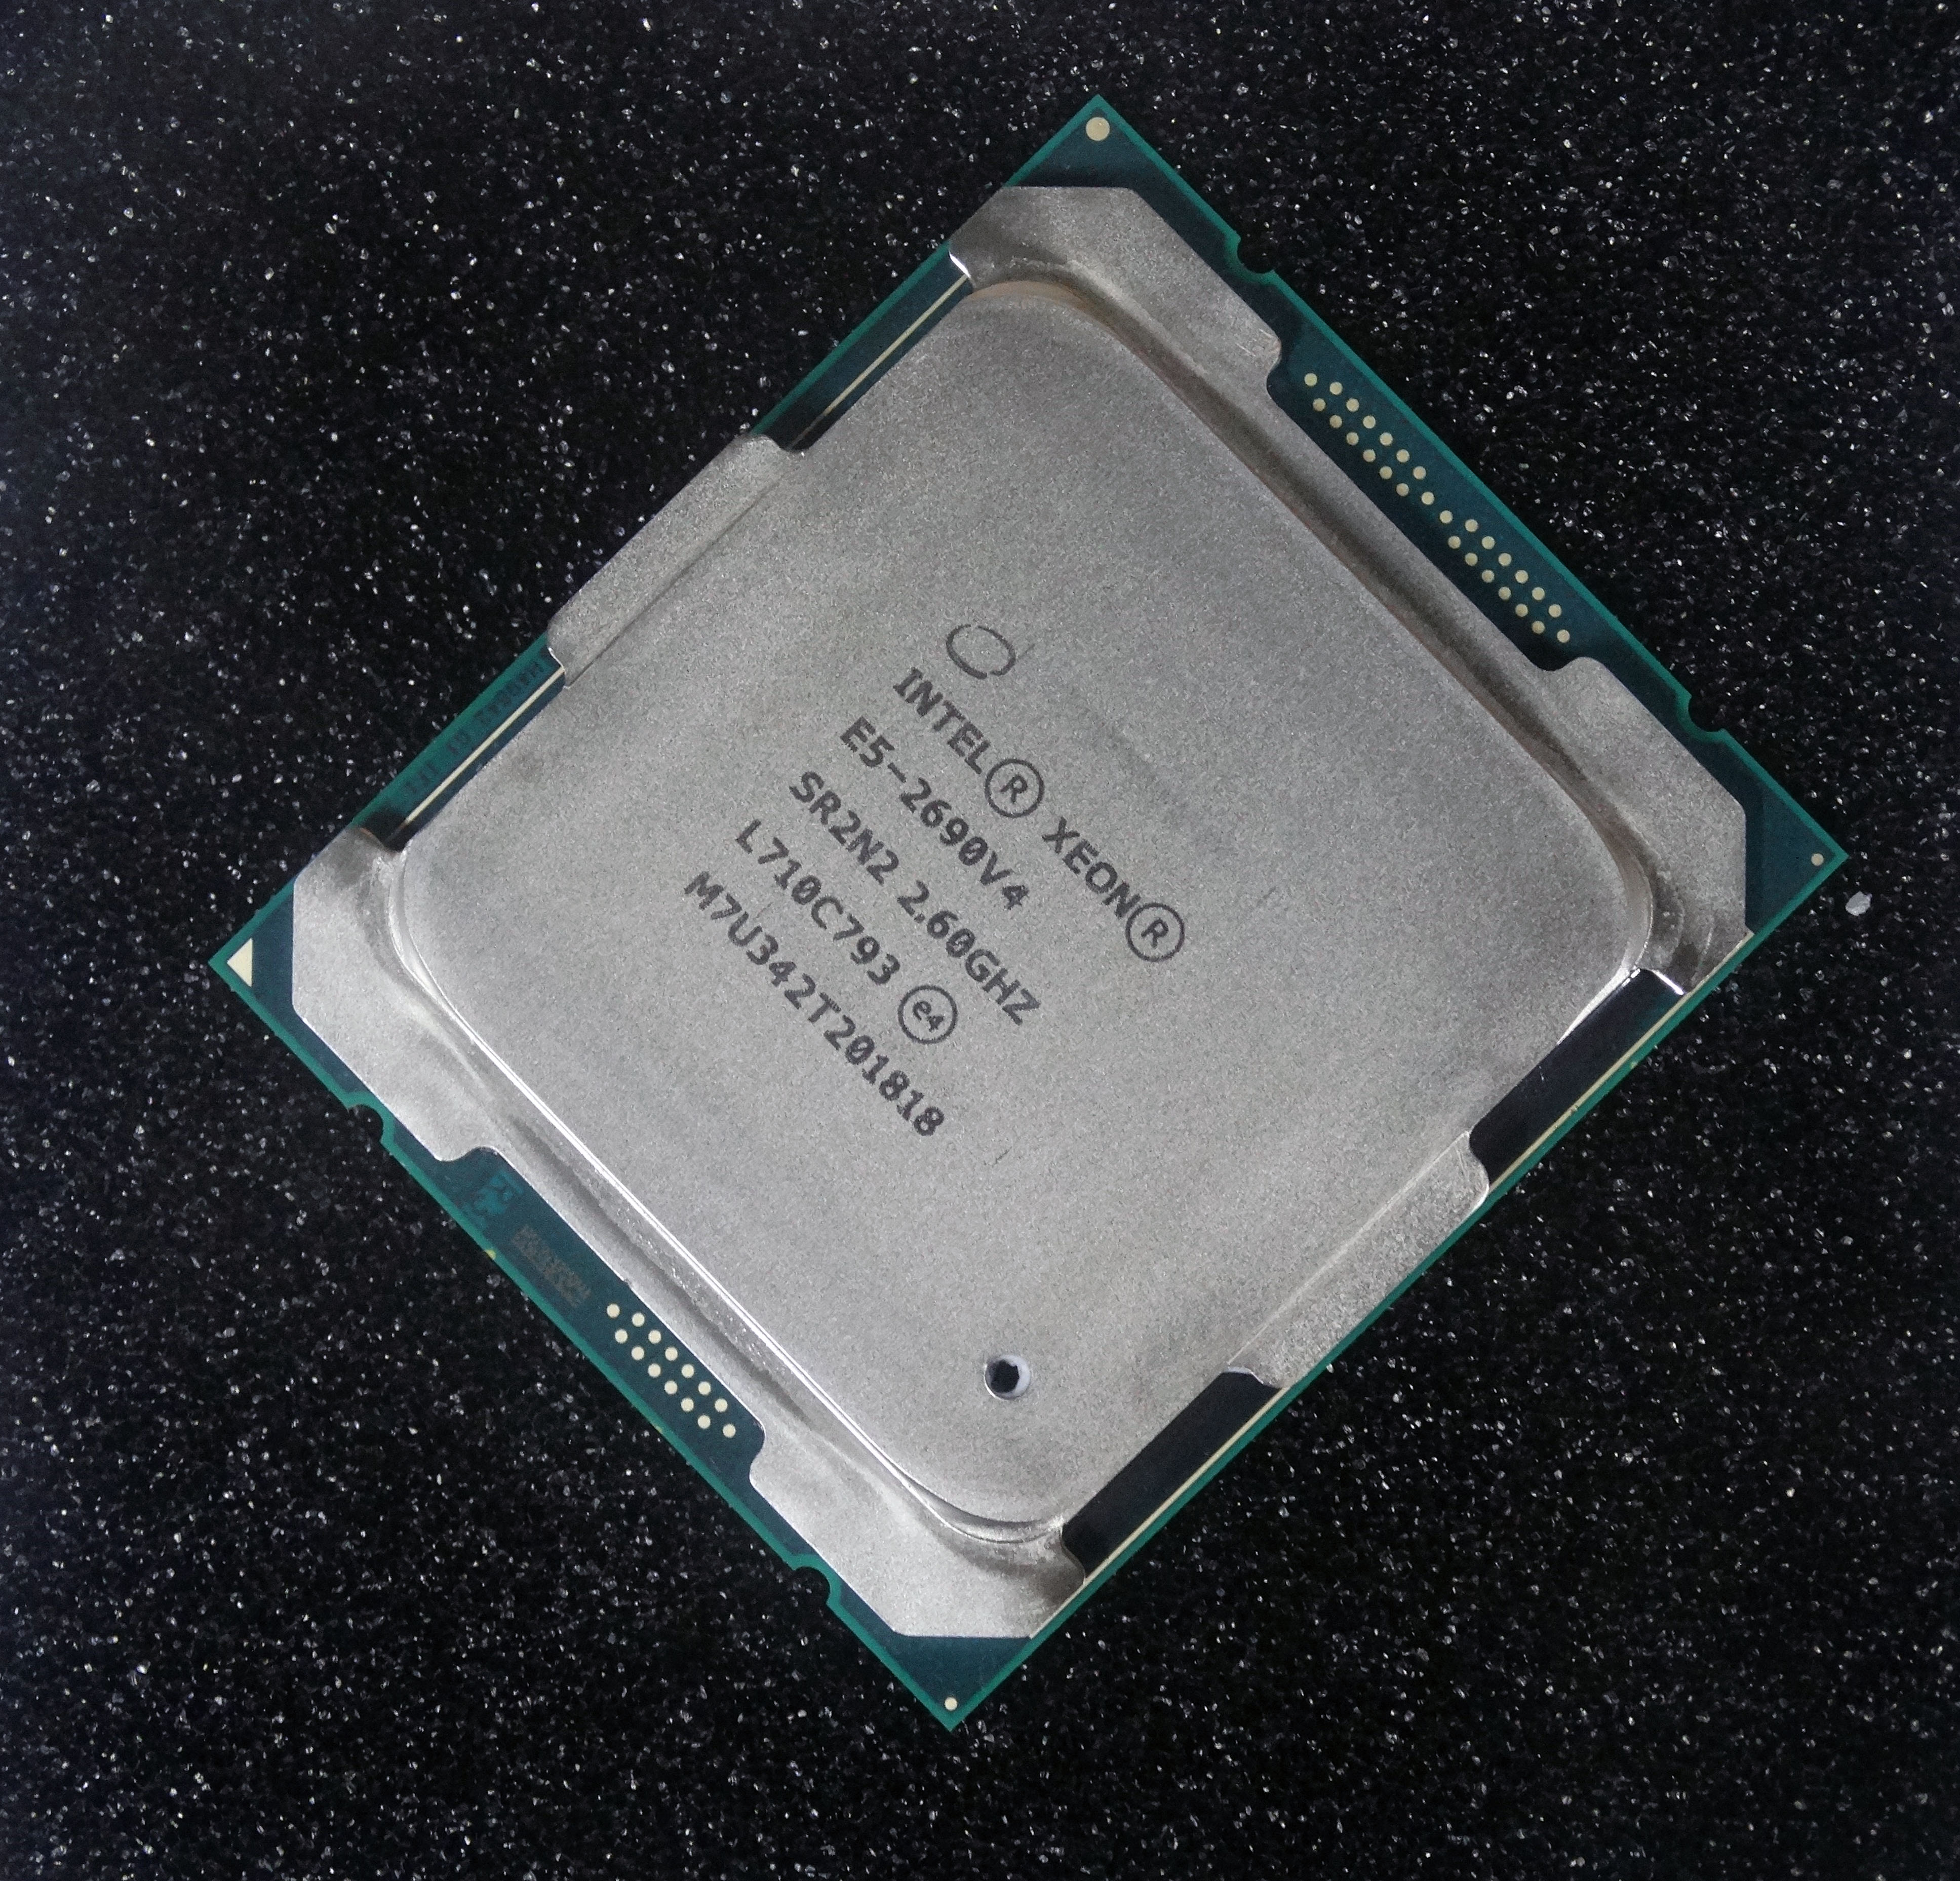 Intel Xeon E5-2690 v4 2.6GHz 14-Core Processors